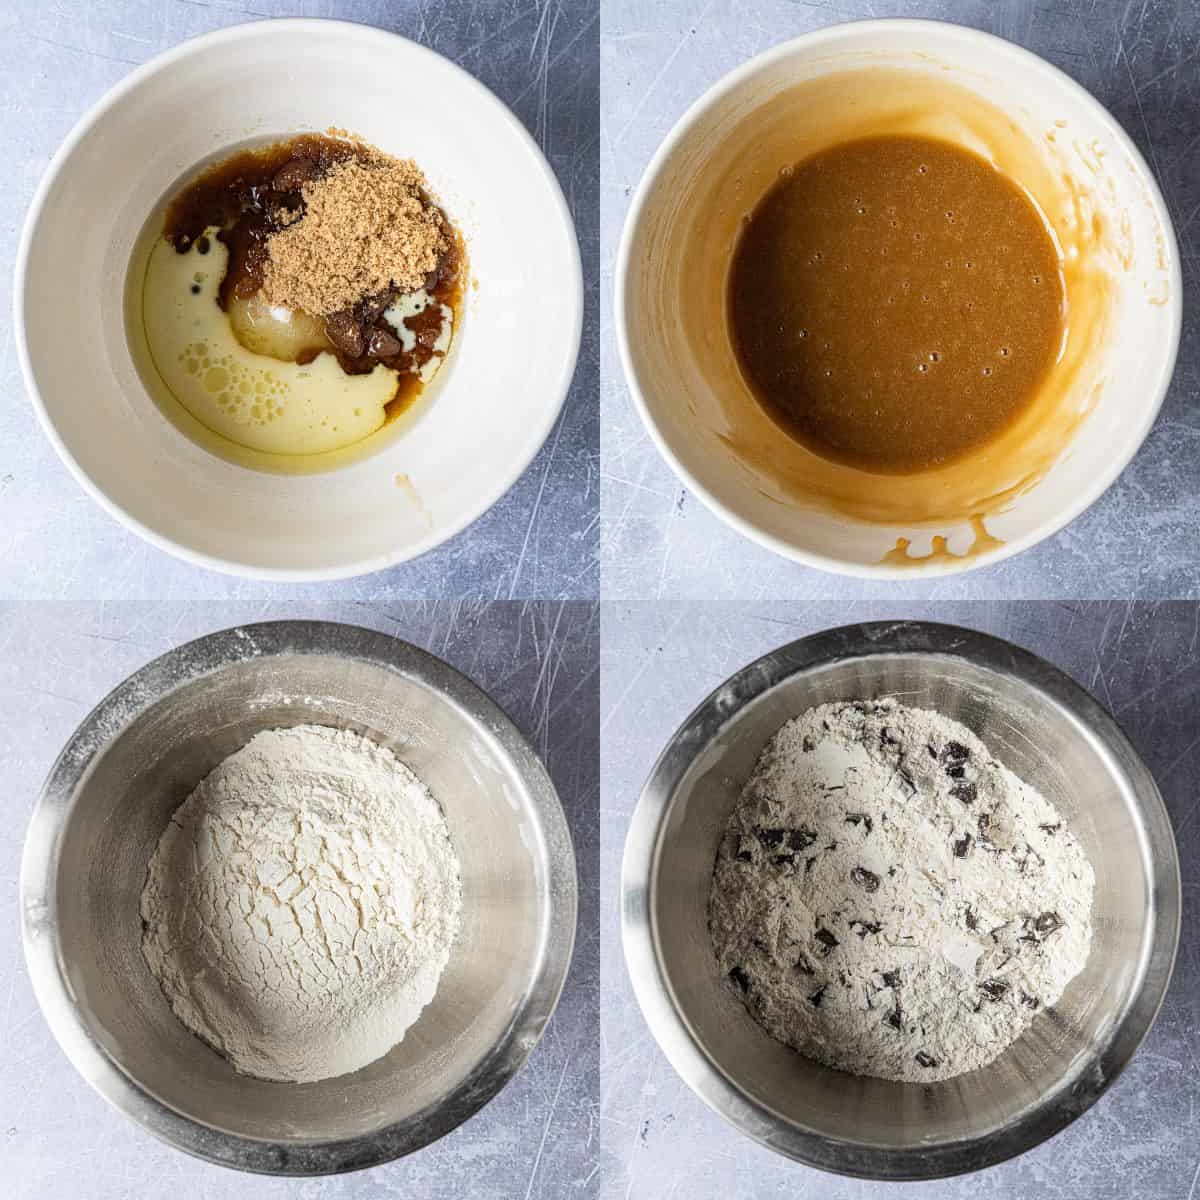 Step 1 - a four image collage of mixing the wet ingredients and sifting together the dry ingredients.